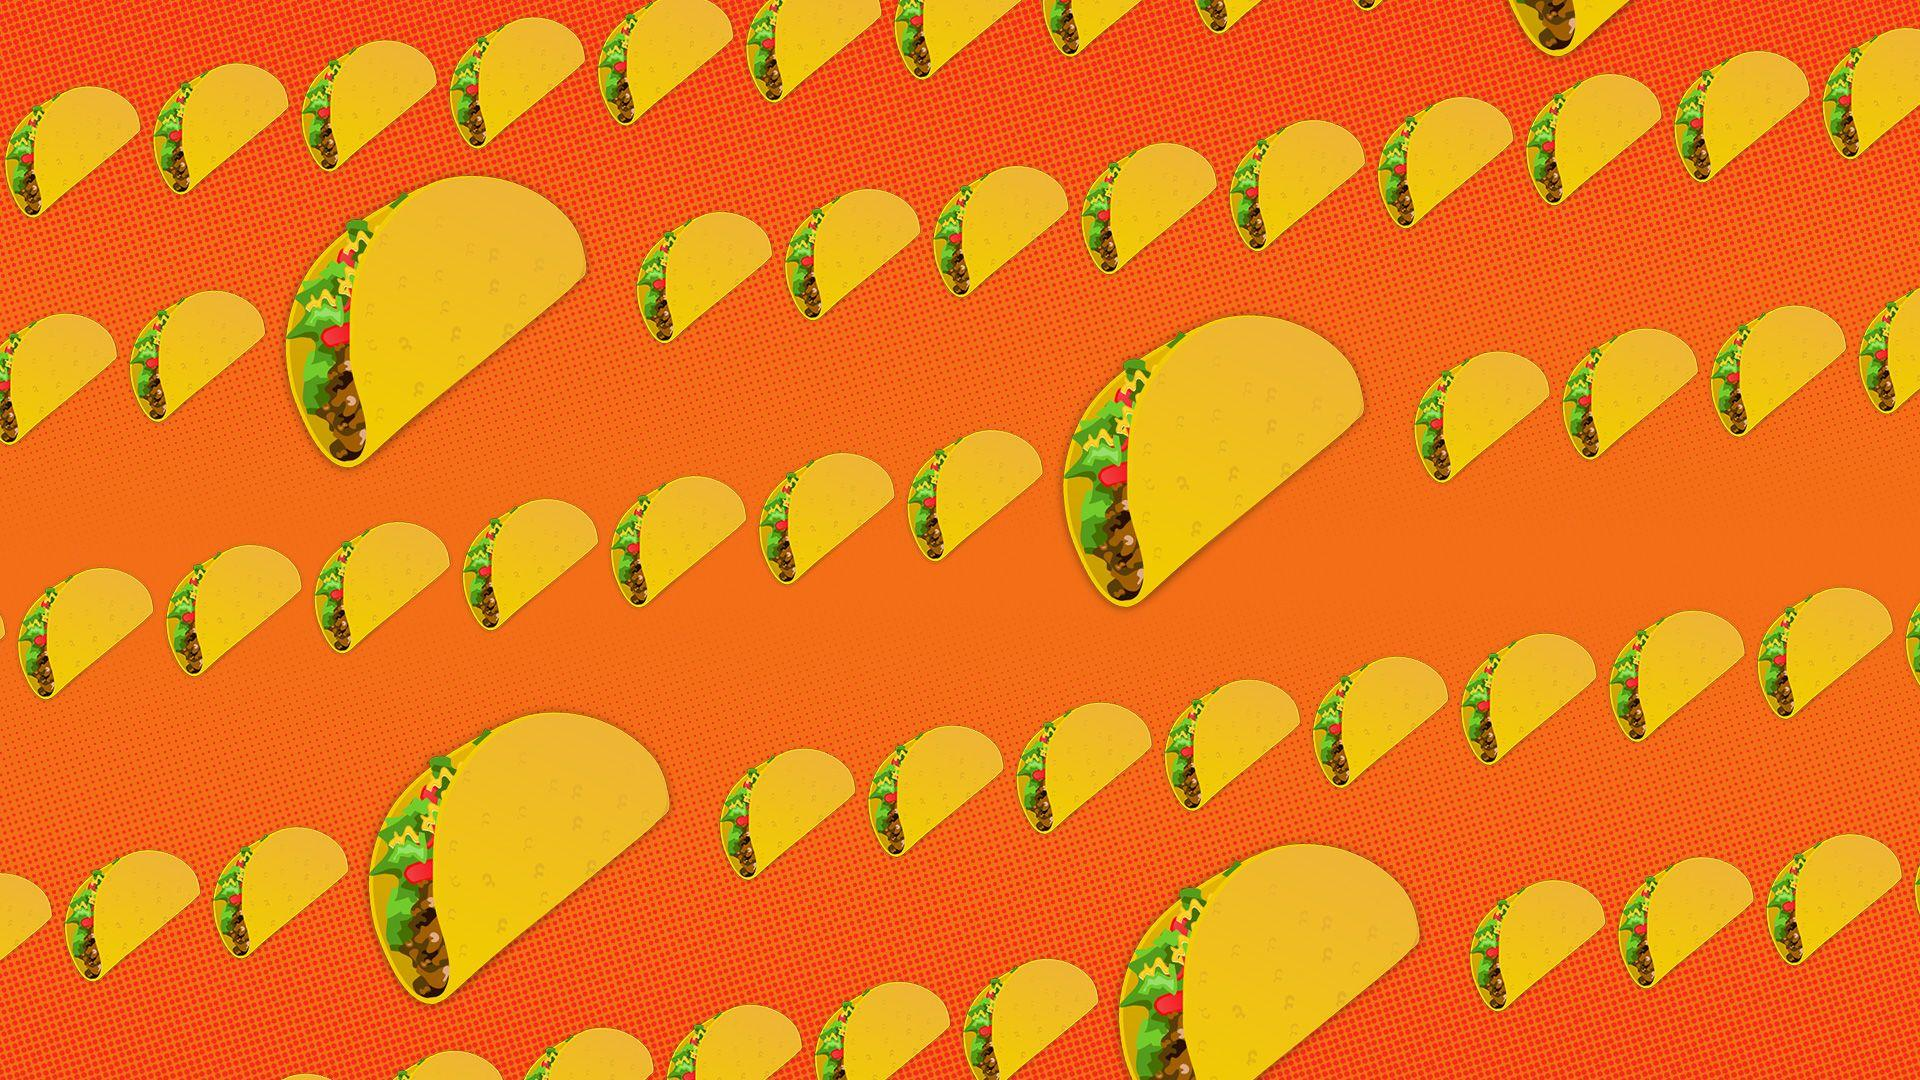 Taco Bell Wallpaper, PC Taco Bell Wallpaper Most Beautiful Images ...